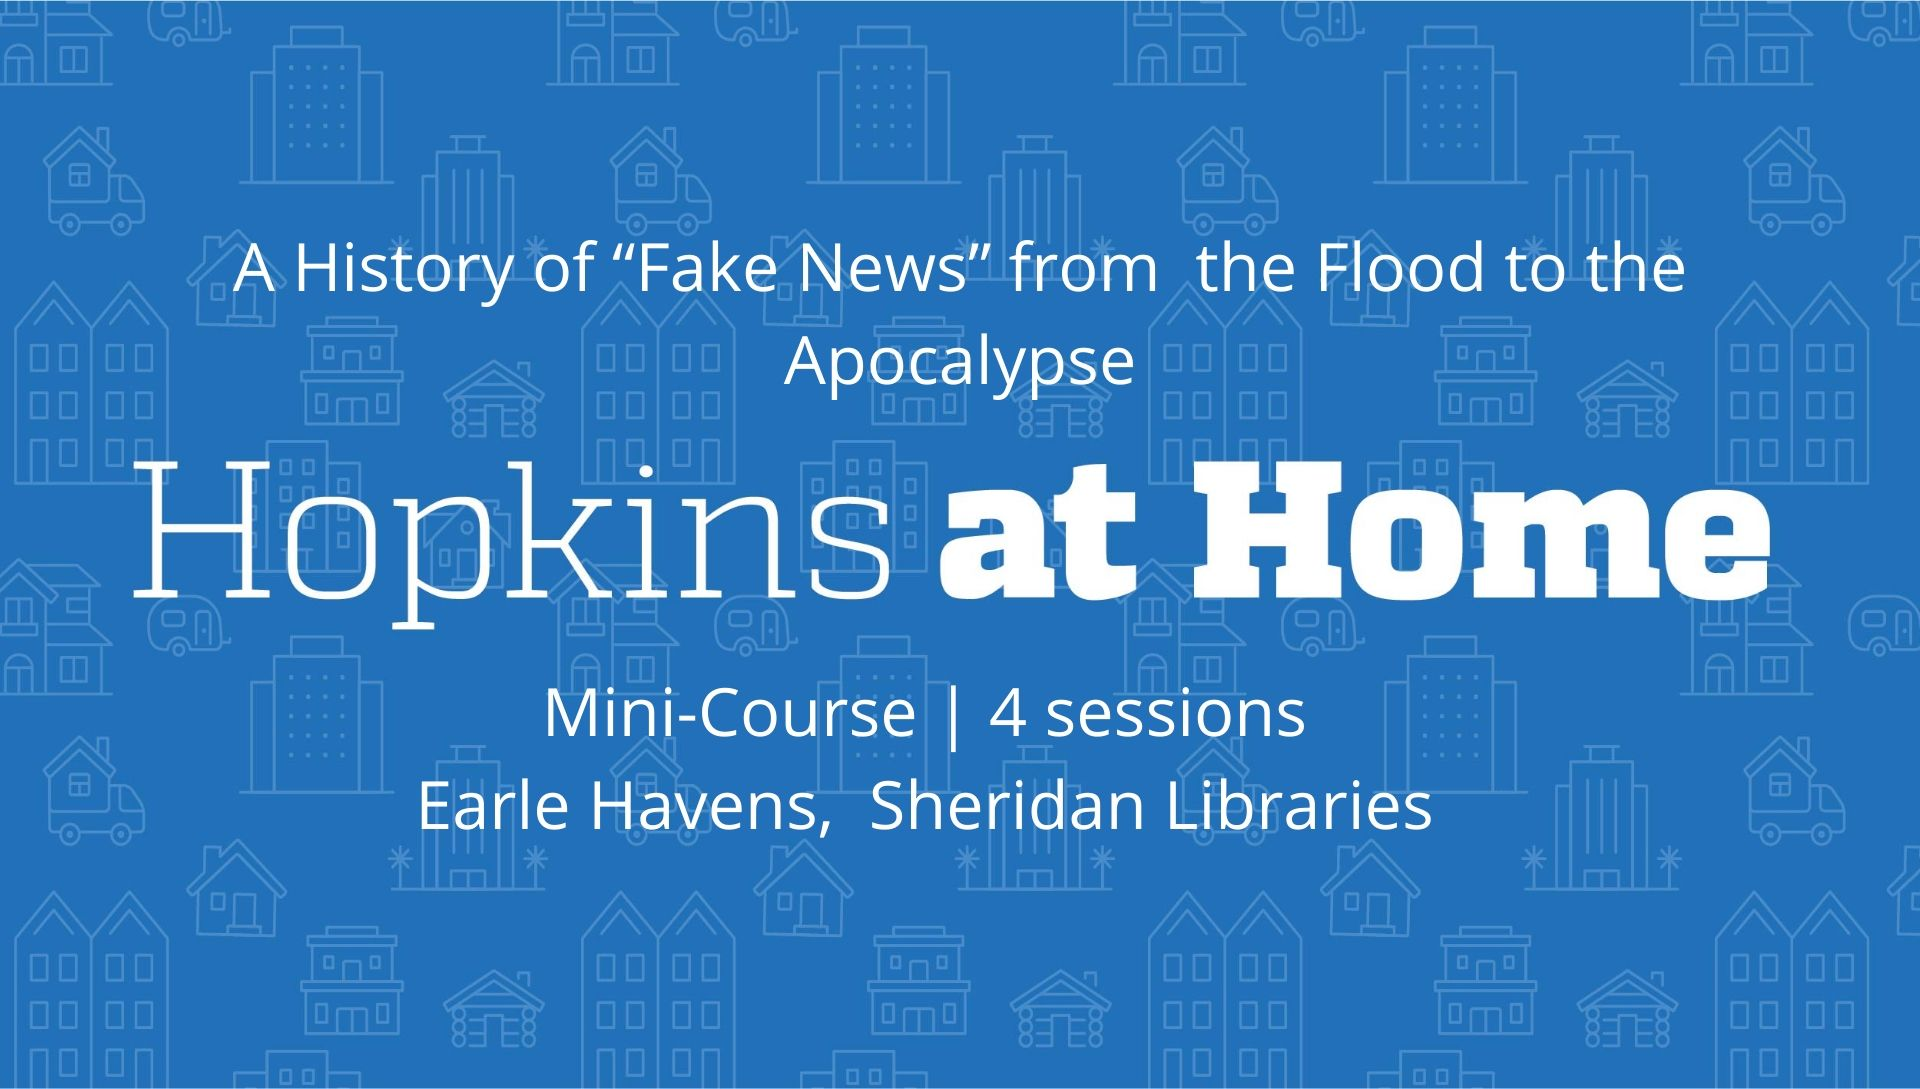 Fake News From the Flood header image